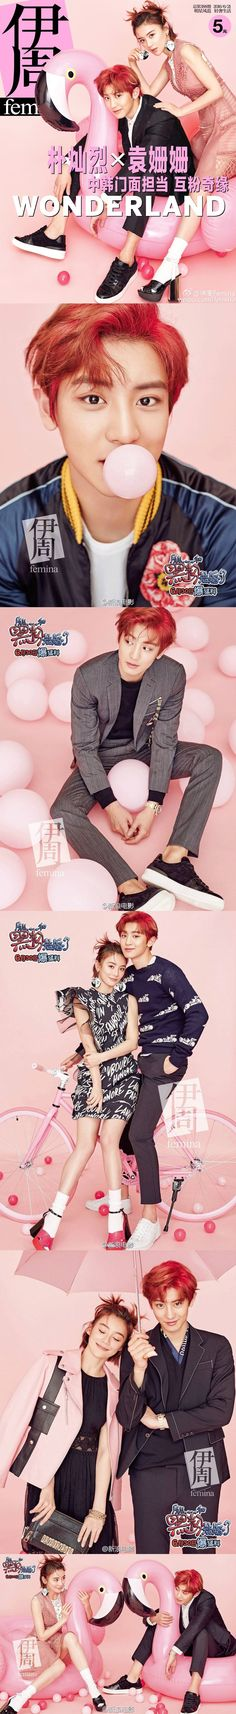 "EXO Chanyeol will sing theme song of his film ""So I Married An Anti-Fan"""